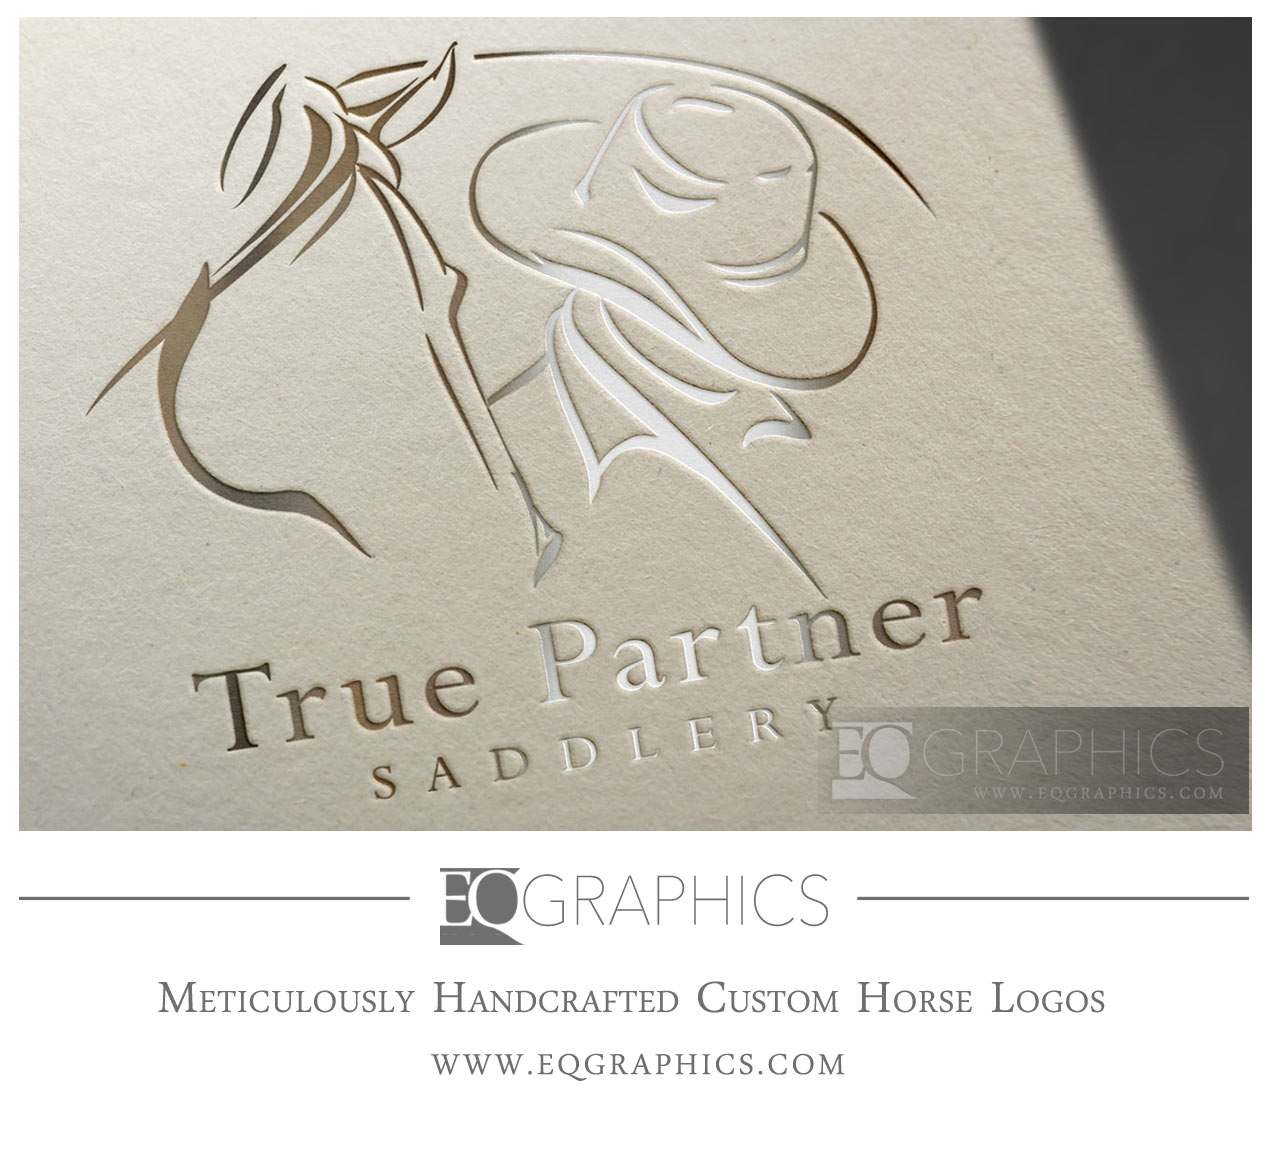 True Partner Saddlery Horse Cowboy Logo Design by EQ Graphics Equine Logos